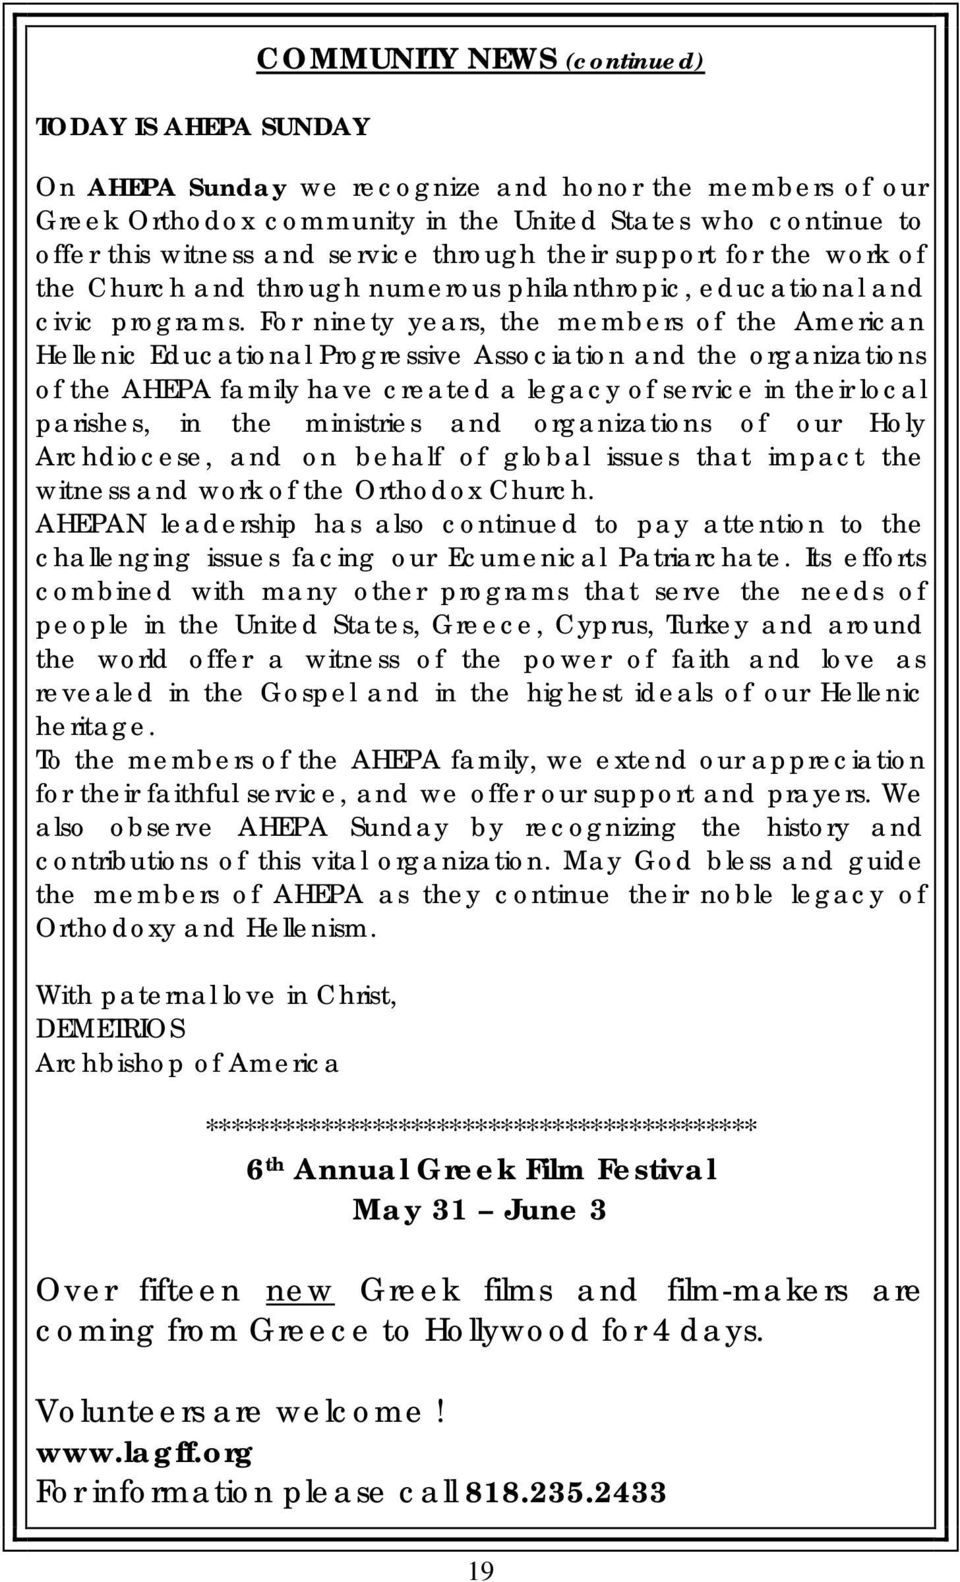 For ninety years, the members of the American Hellenic Educational Progressive Association and the organizations of the AHEPA family have created a legacy of service in their local parishes, in the